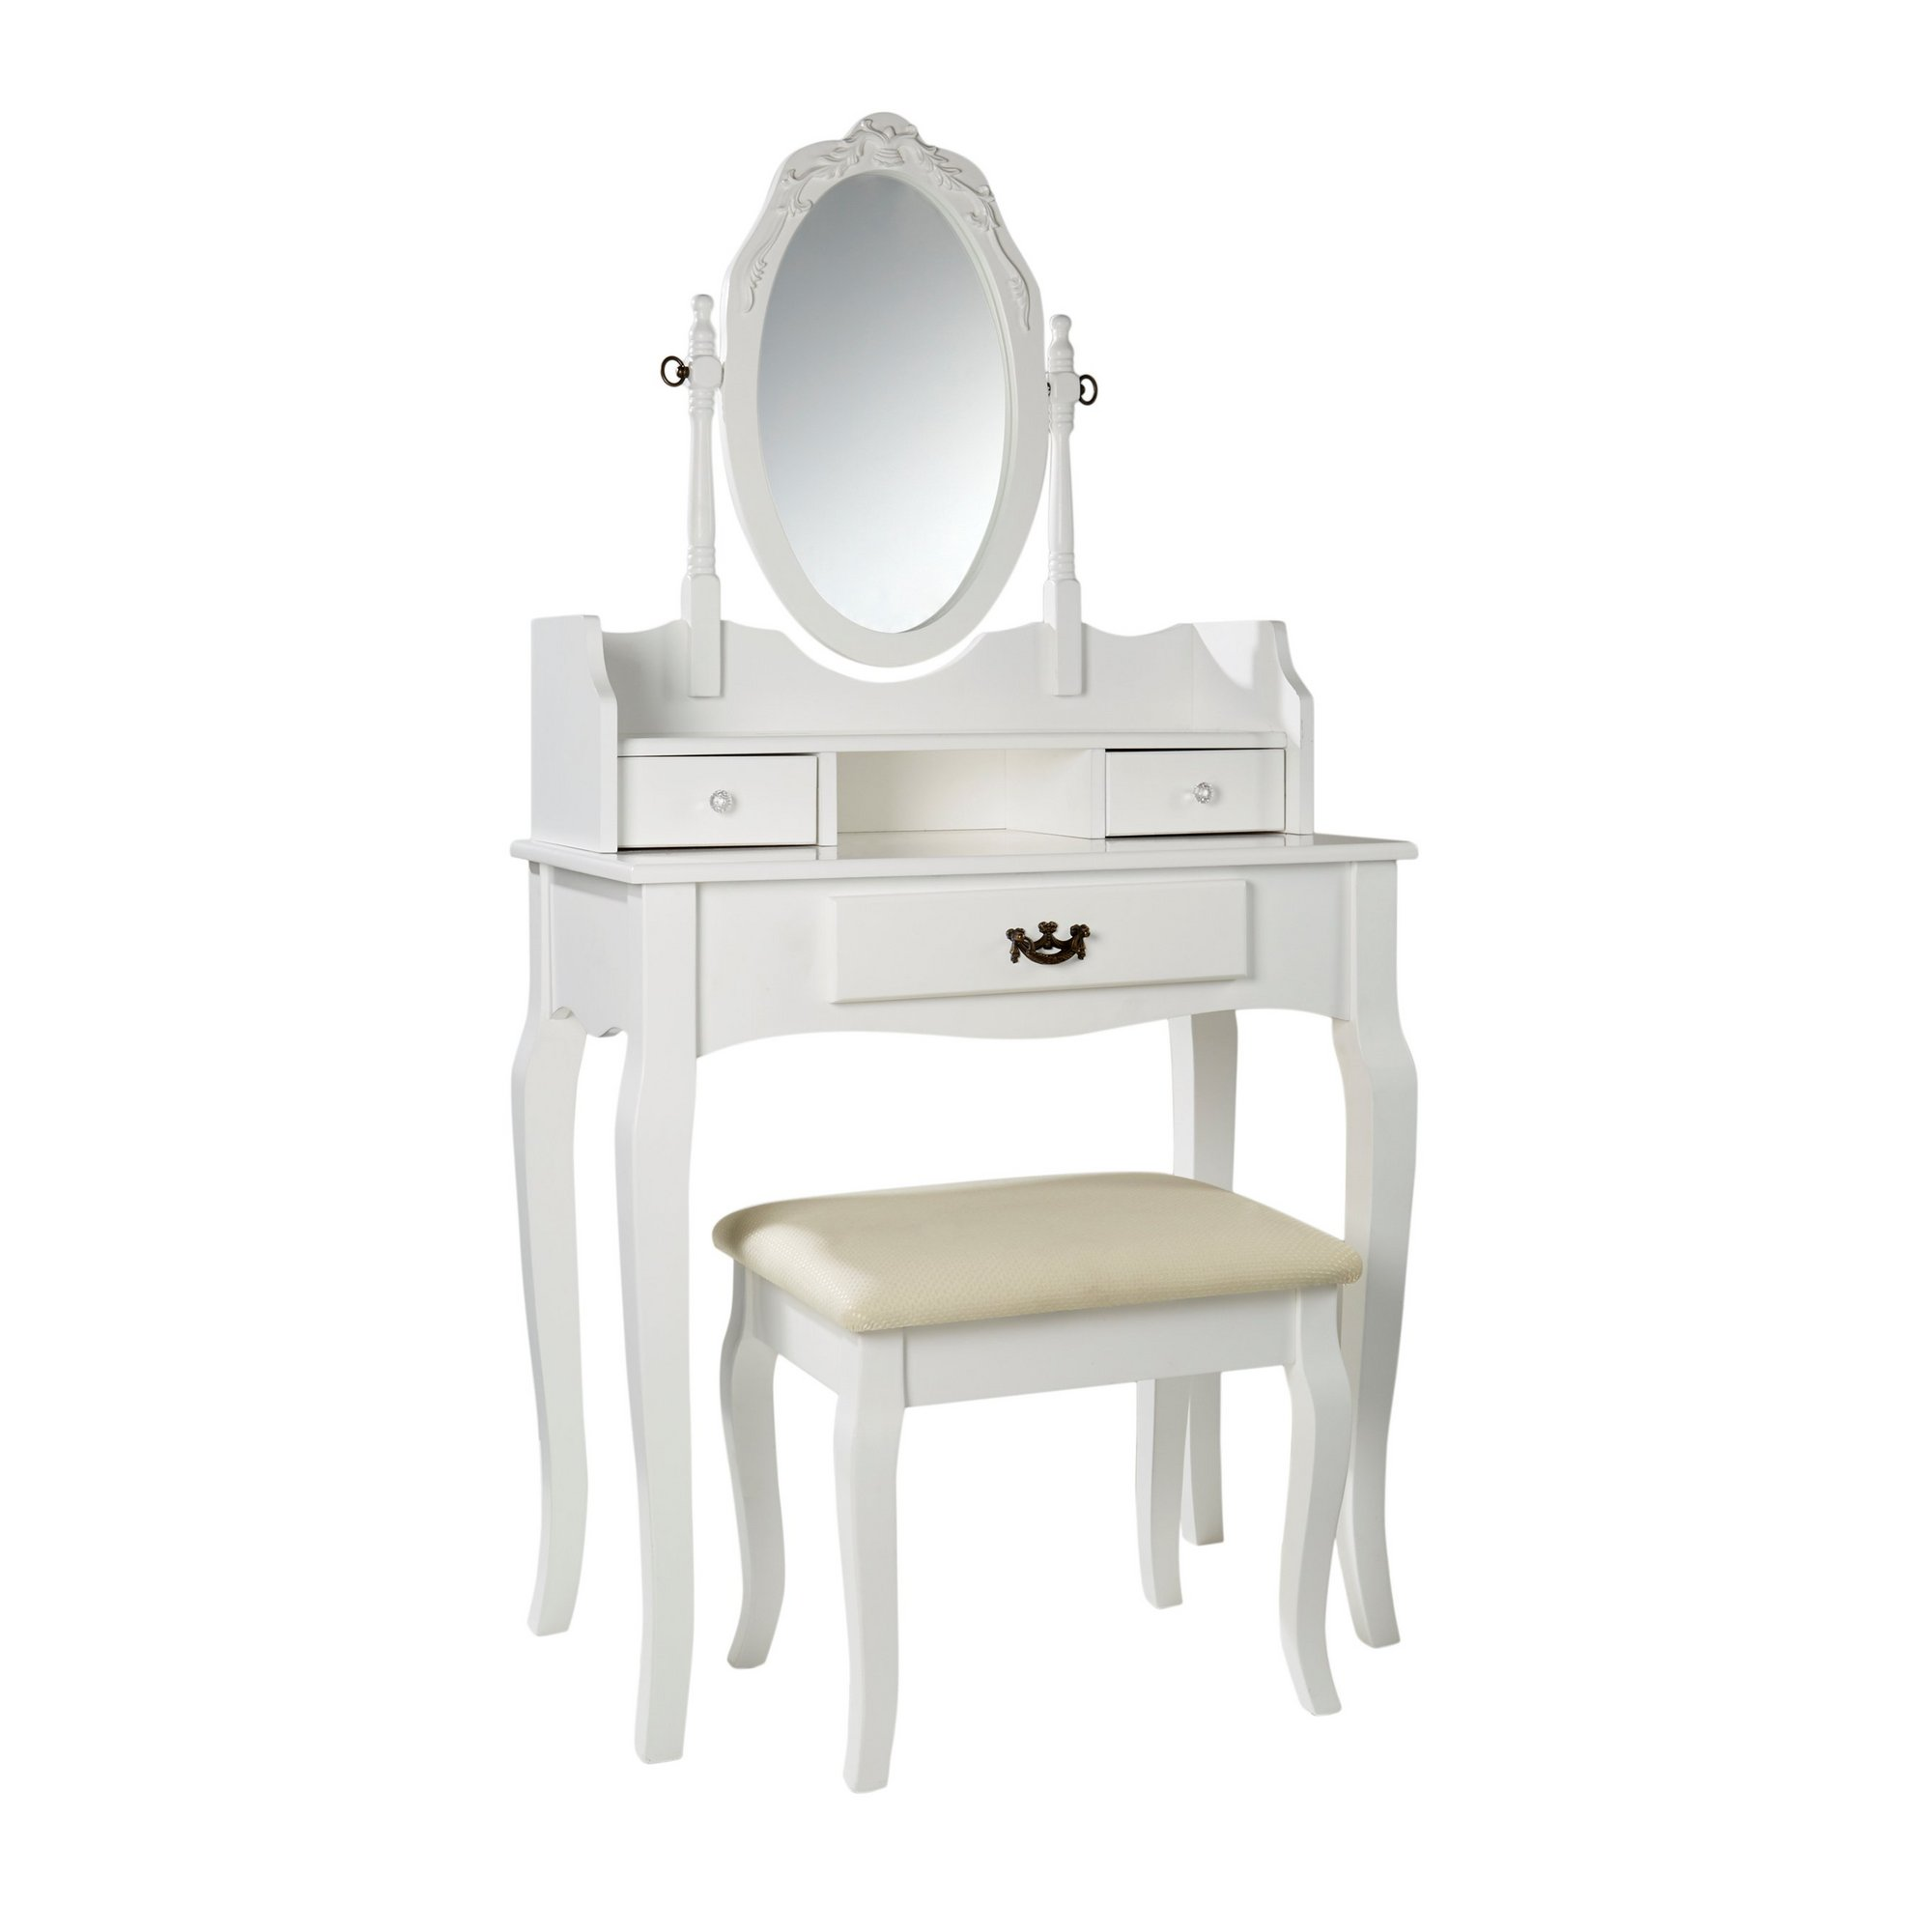 Image of Deluxe Dresser and Stool